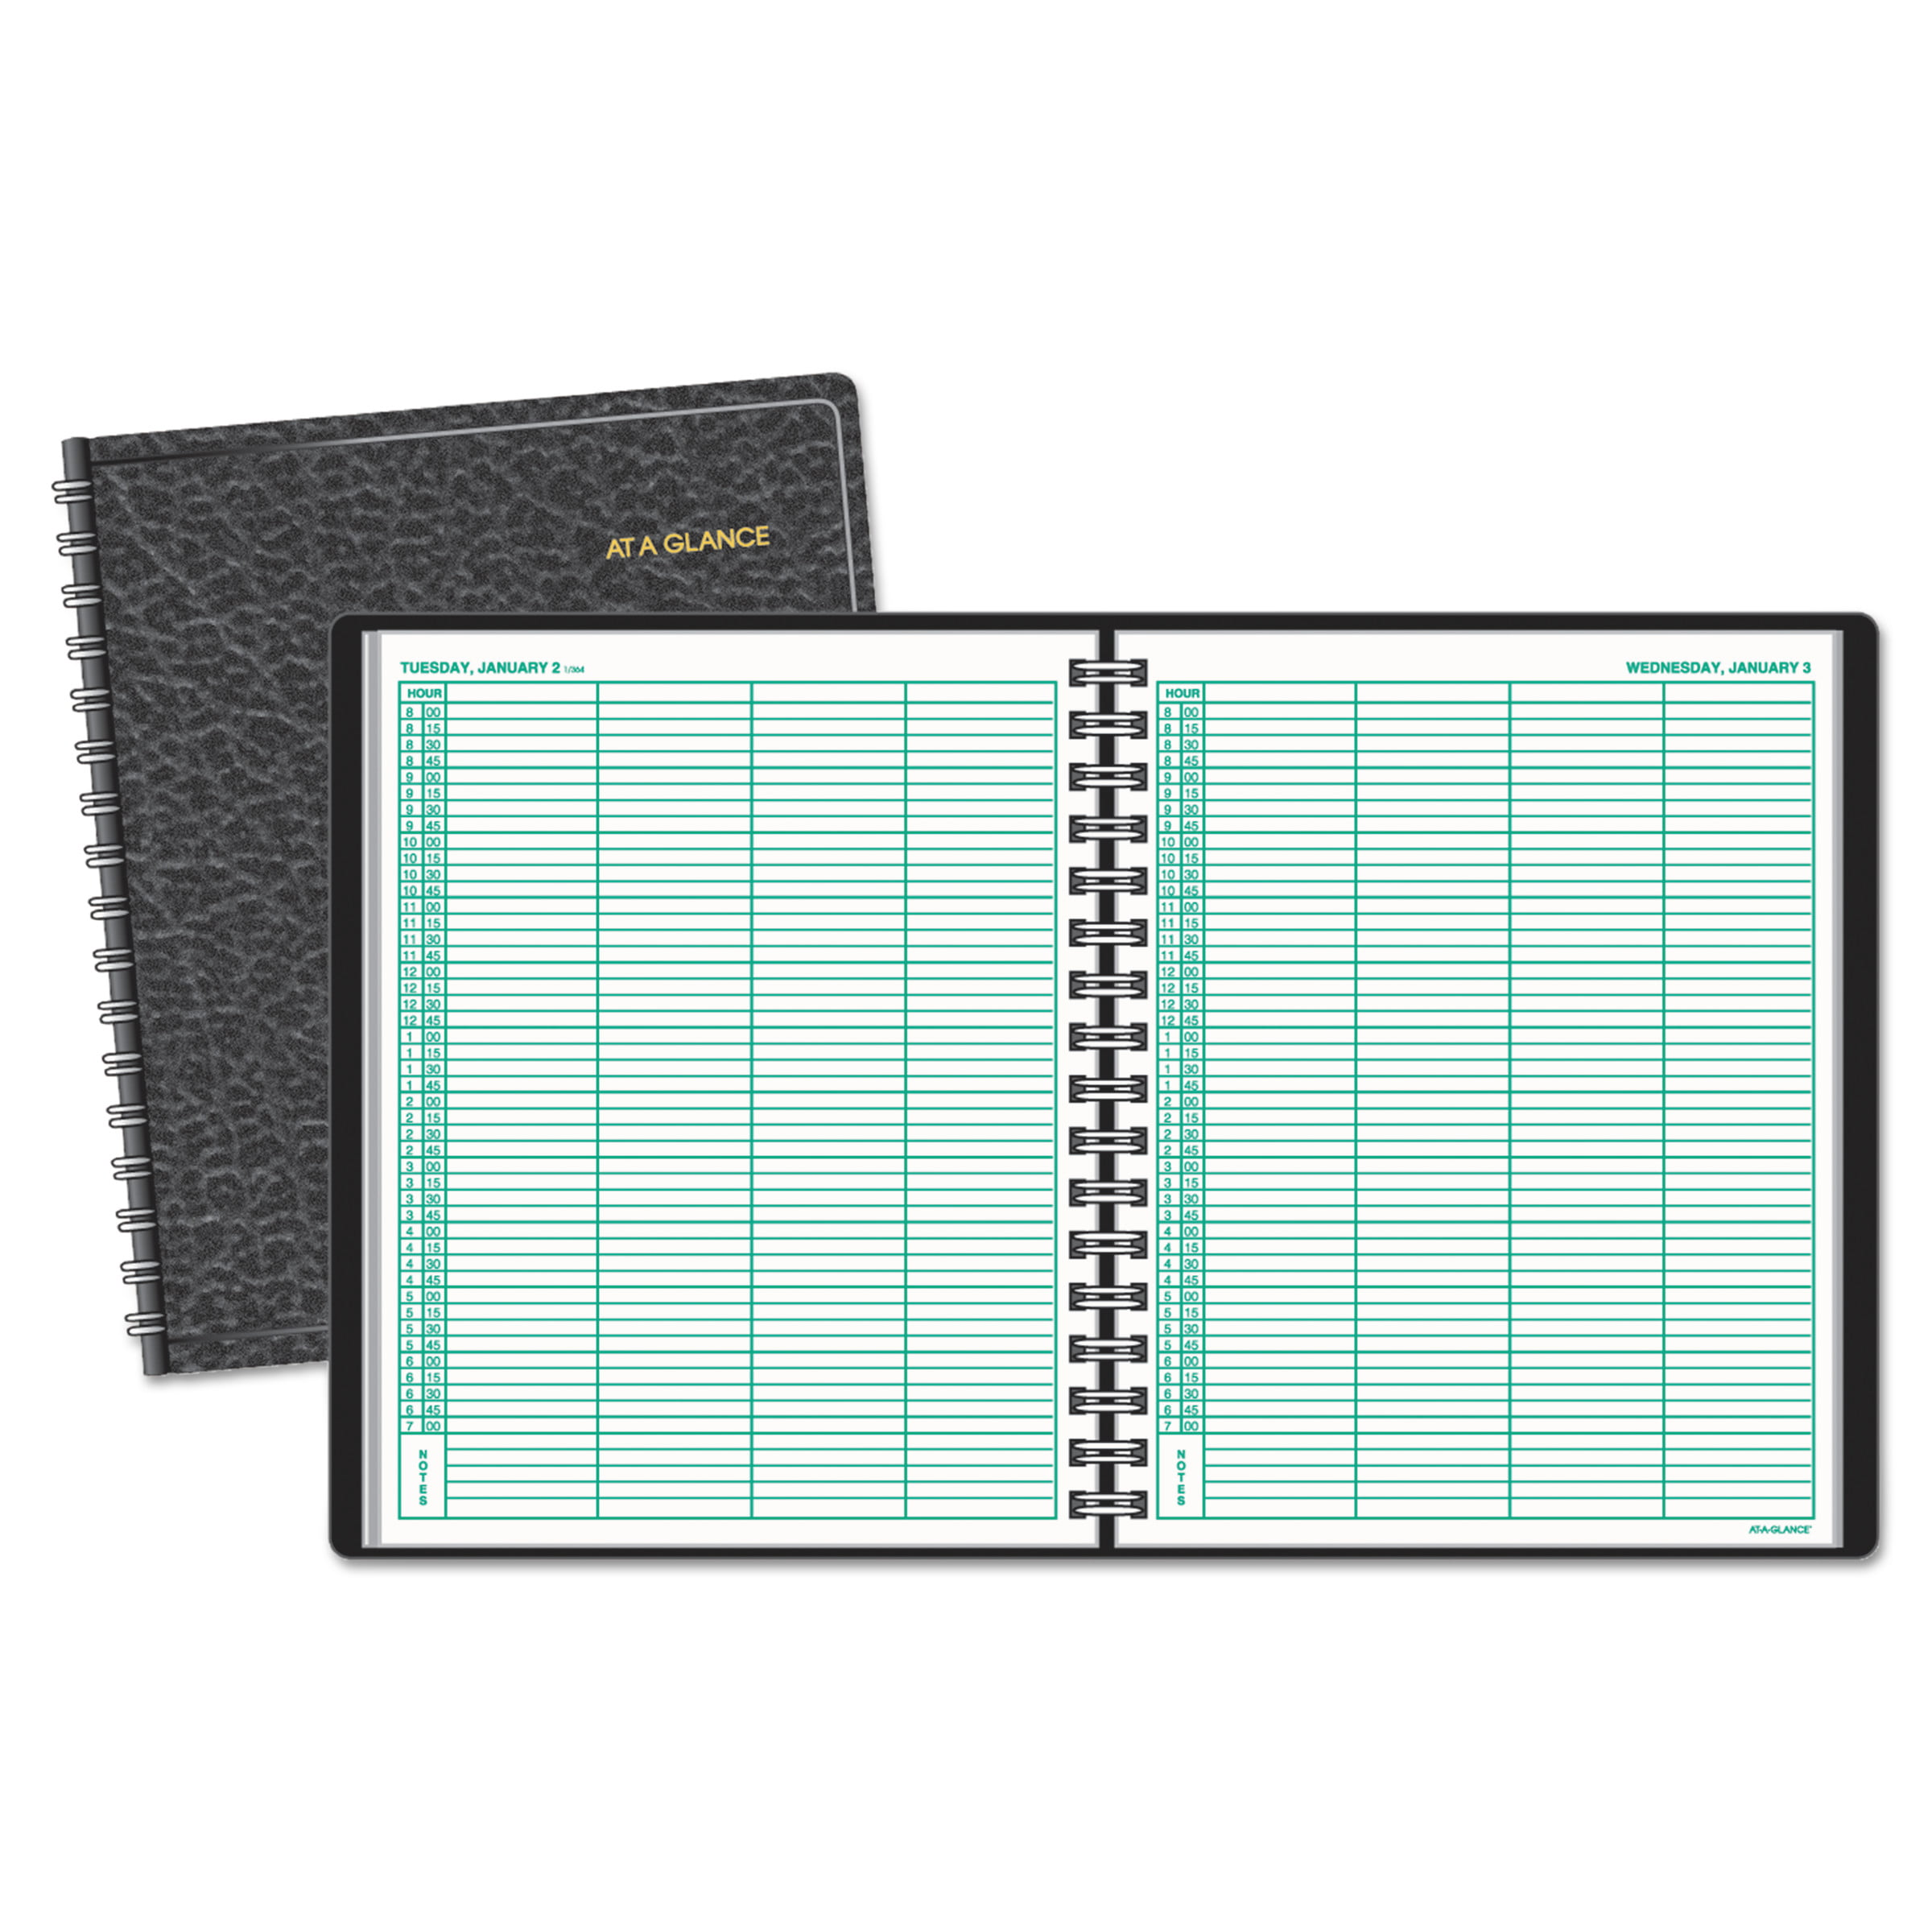 AT-A-GLANCE Four-Person Group Daily Appointment Book, 8 x 10 7 8, White, 2018 by AT-A-GLANCE